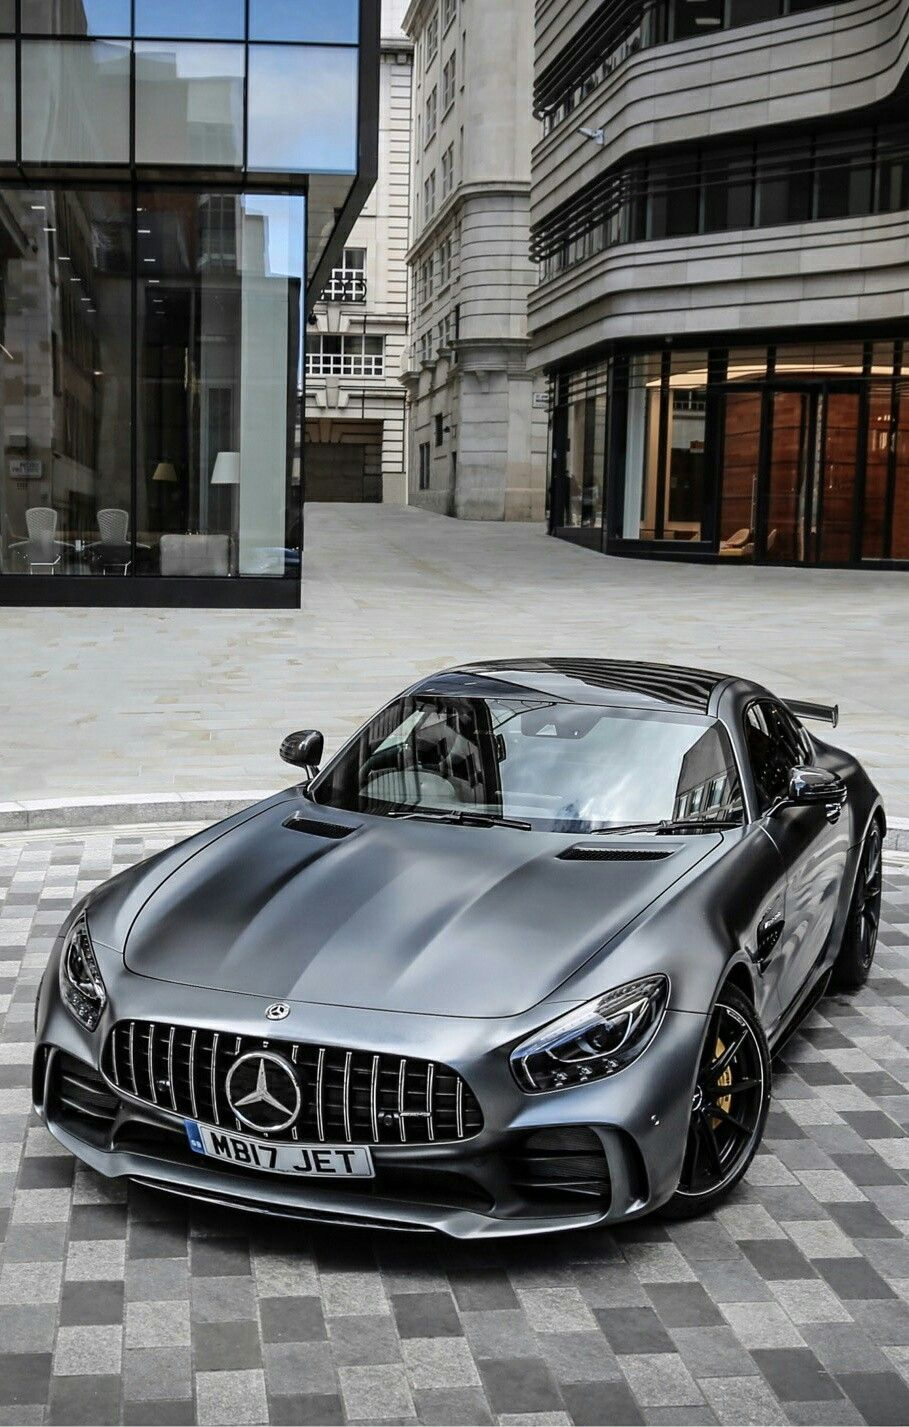 (°!°) Mercedes AMG GT-R, enhanced by Keely VonMonski #mercedesamg